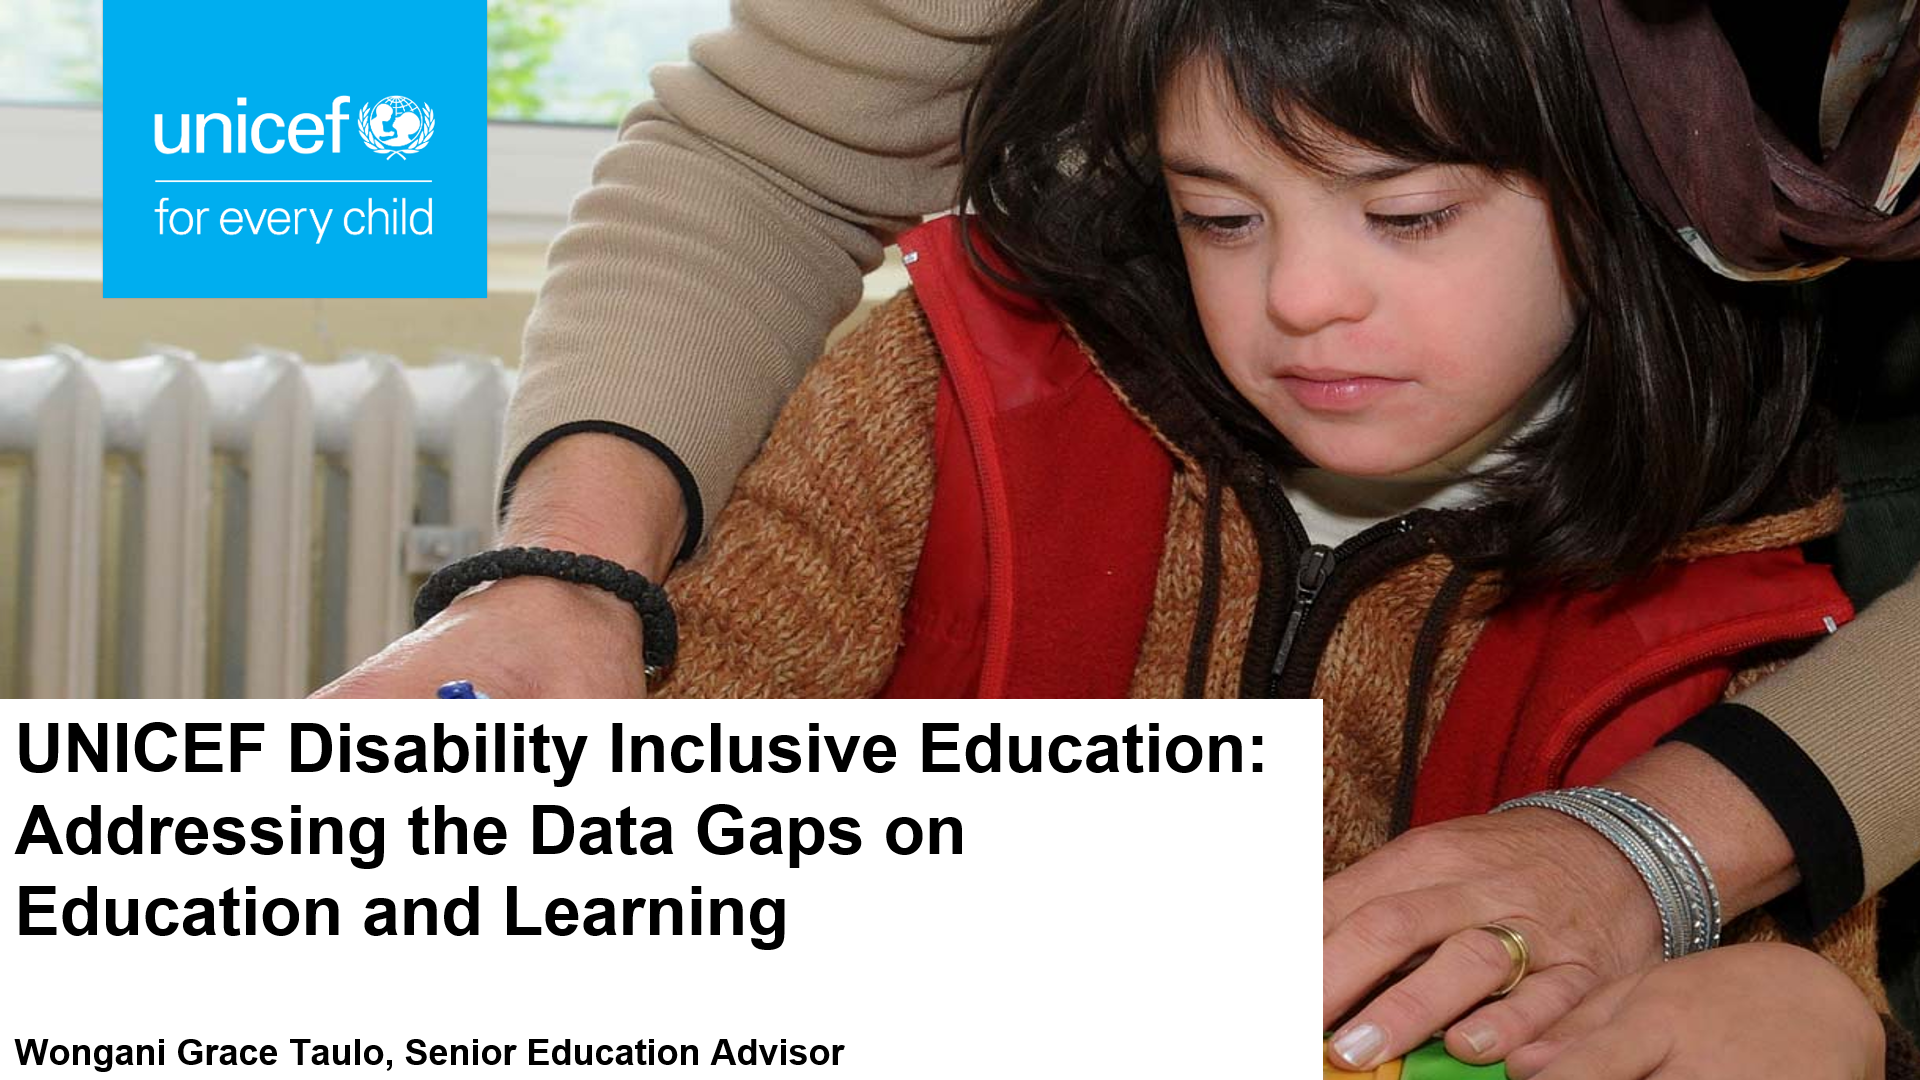 UNICEF Disability Inclusive Education: Addressing the Data Gaps on Education and Learning